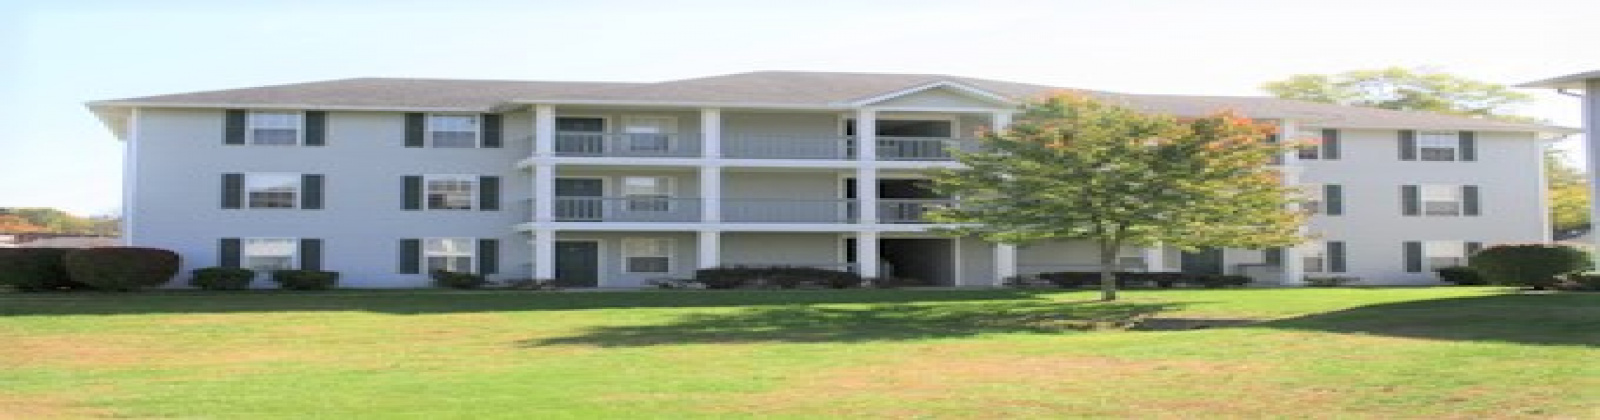 15 S Shafer Street APT 1909 Athens, Ohio, 2 Bedrooms Bedrooms, ,1 BathroomBathrooms,Apartment,For Rent,S Shafer,1027